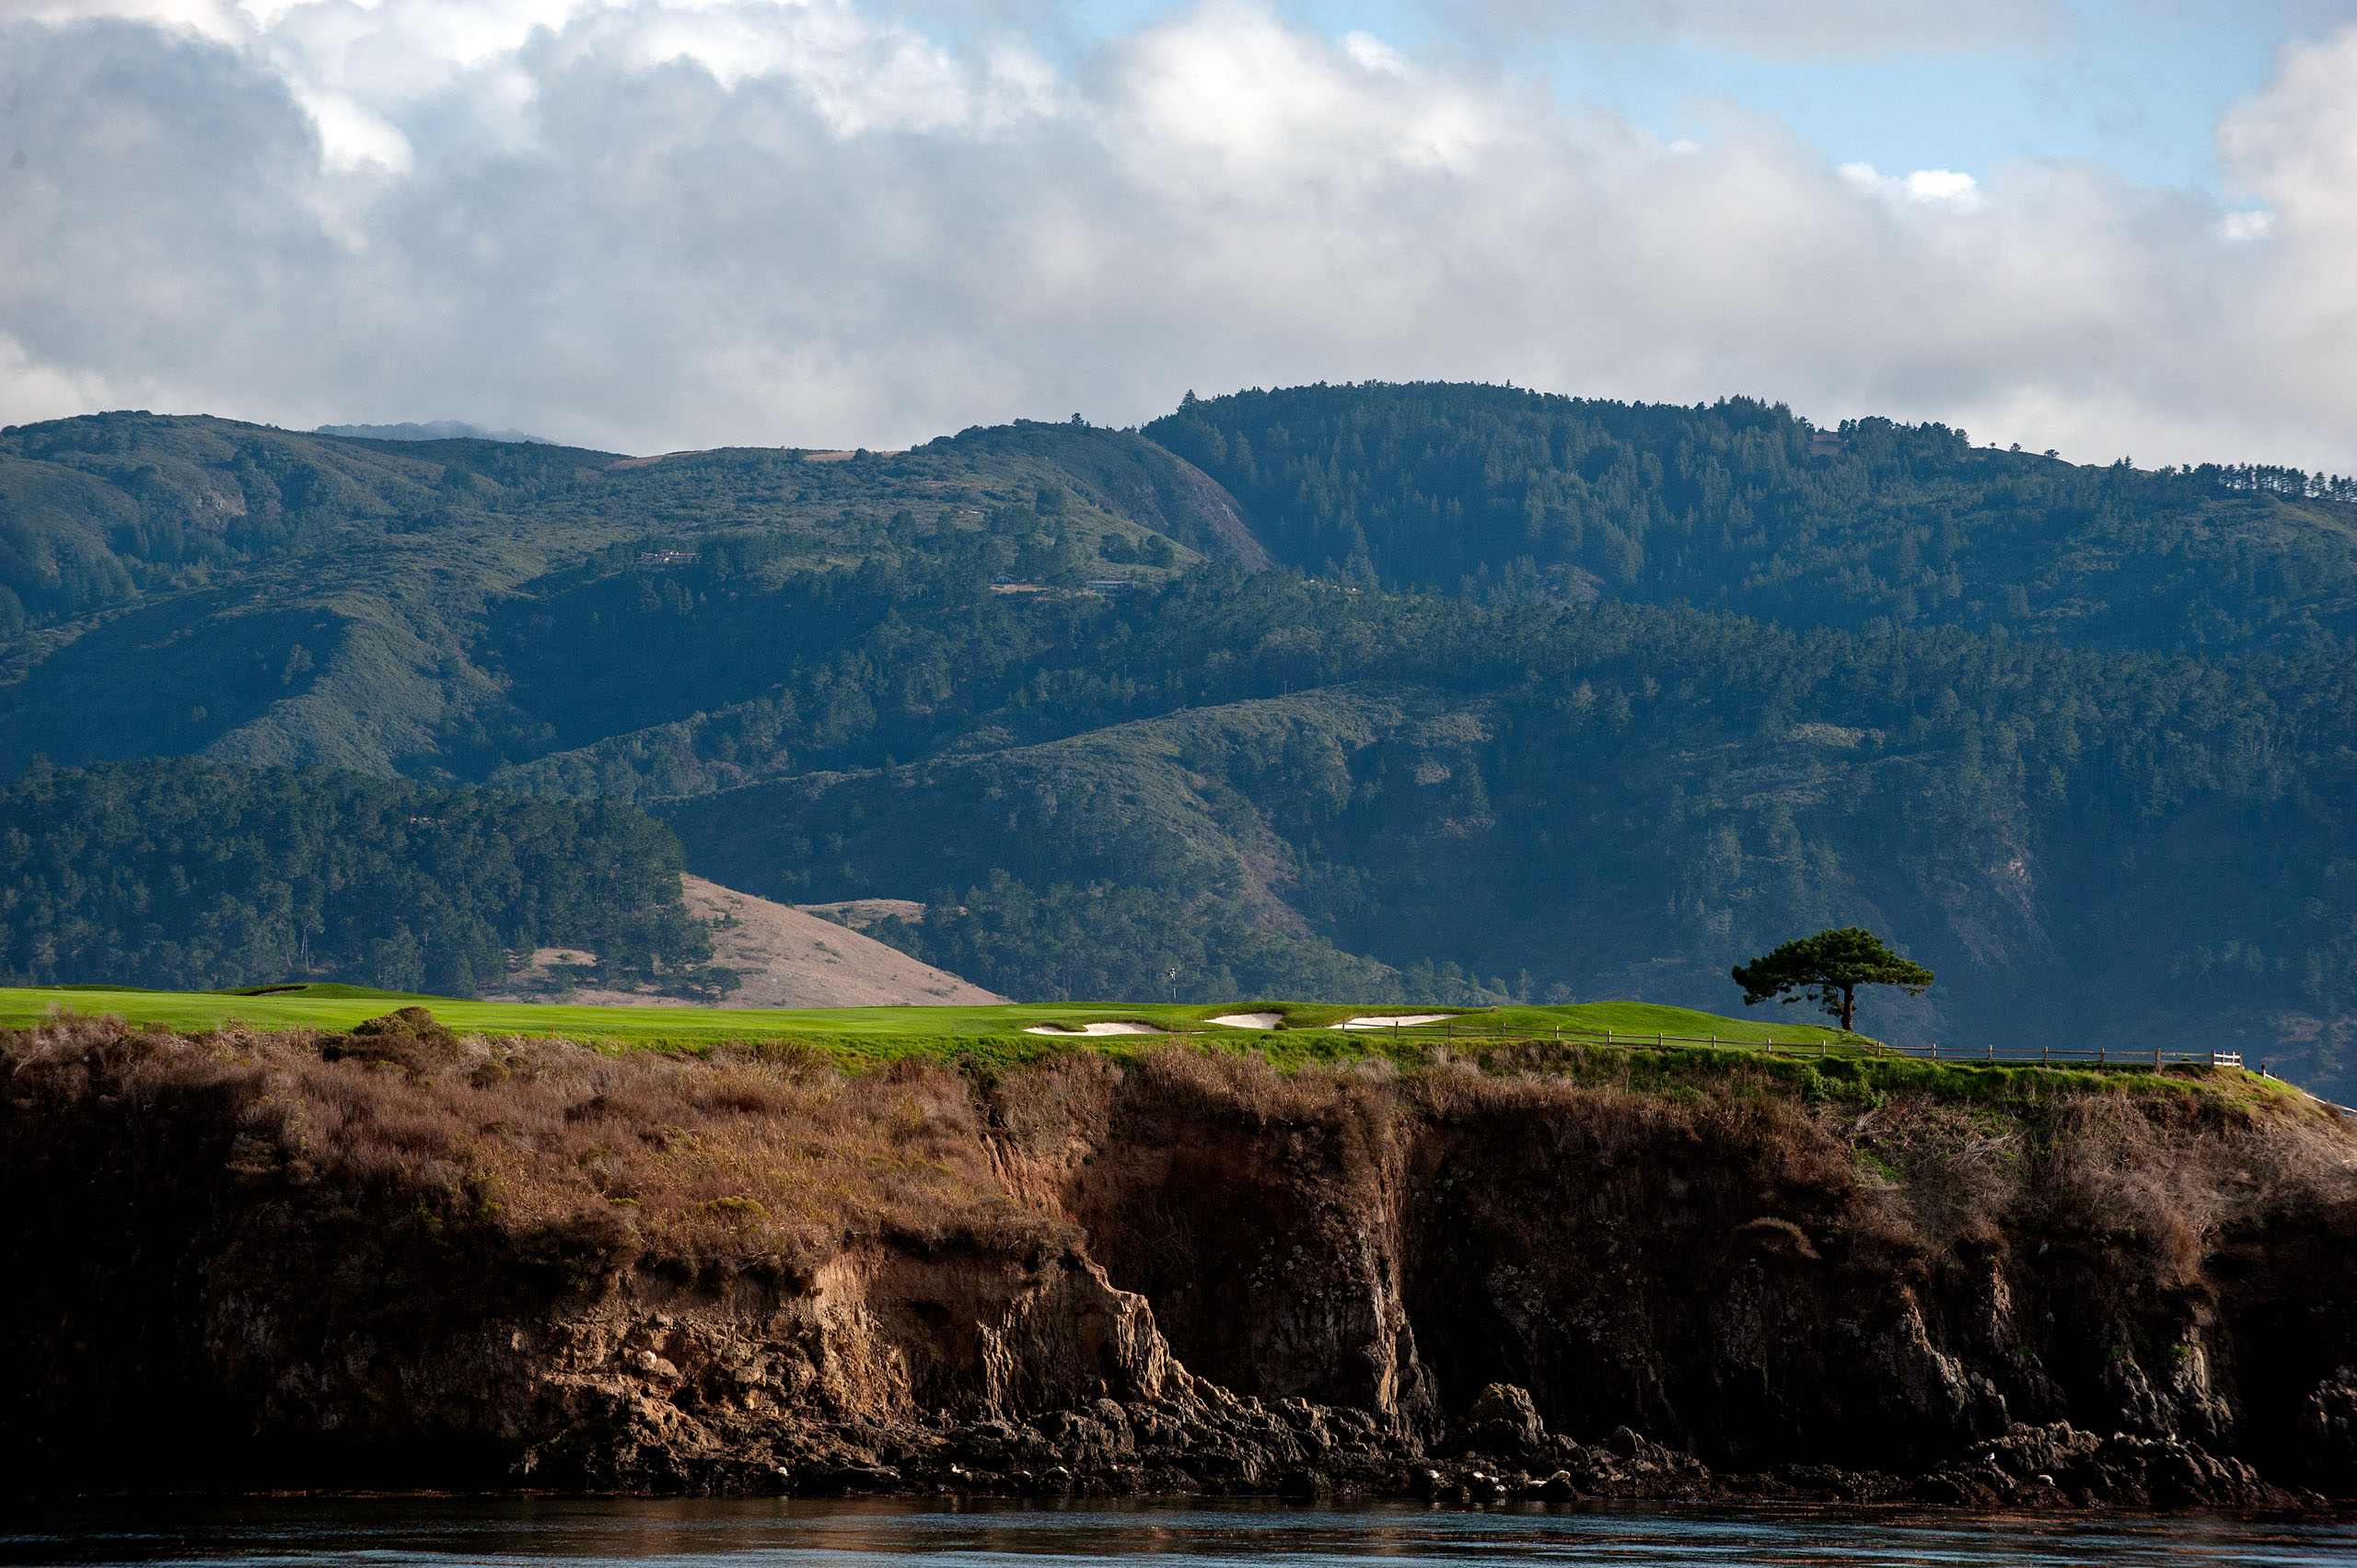 Styles change and the game evolves. So does Pebble: The tree by No. 6 green has since been removed.  Photo by Kohjiro Kinno